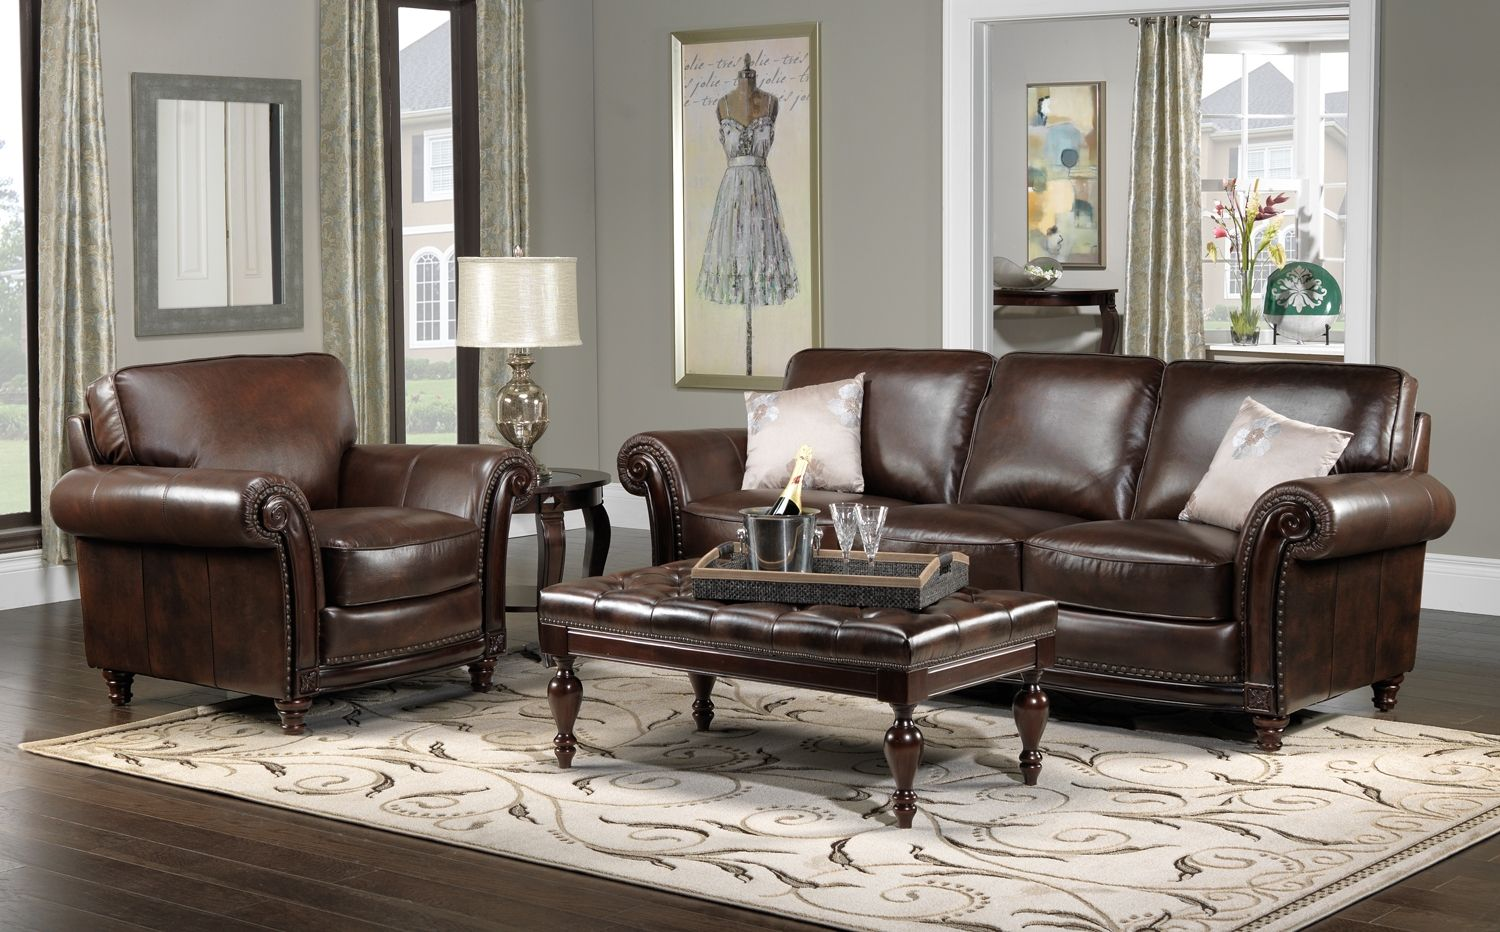 Dream house decor ideas for brown leather furniture gngkxz decorating ideas with brown leather - Decoration furniture ...